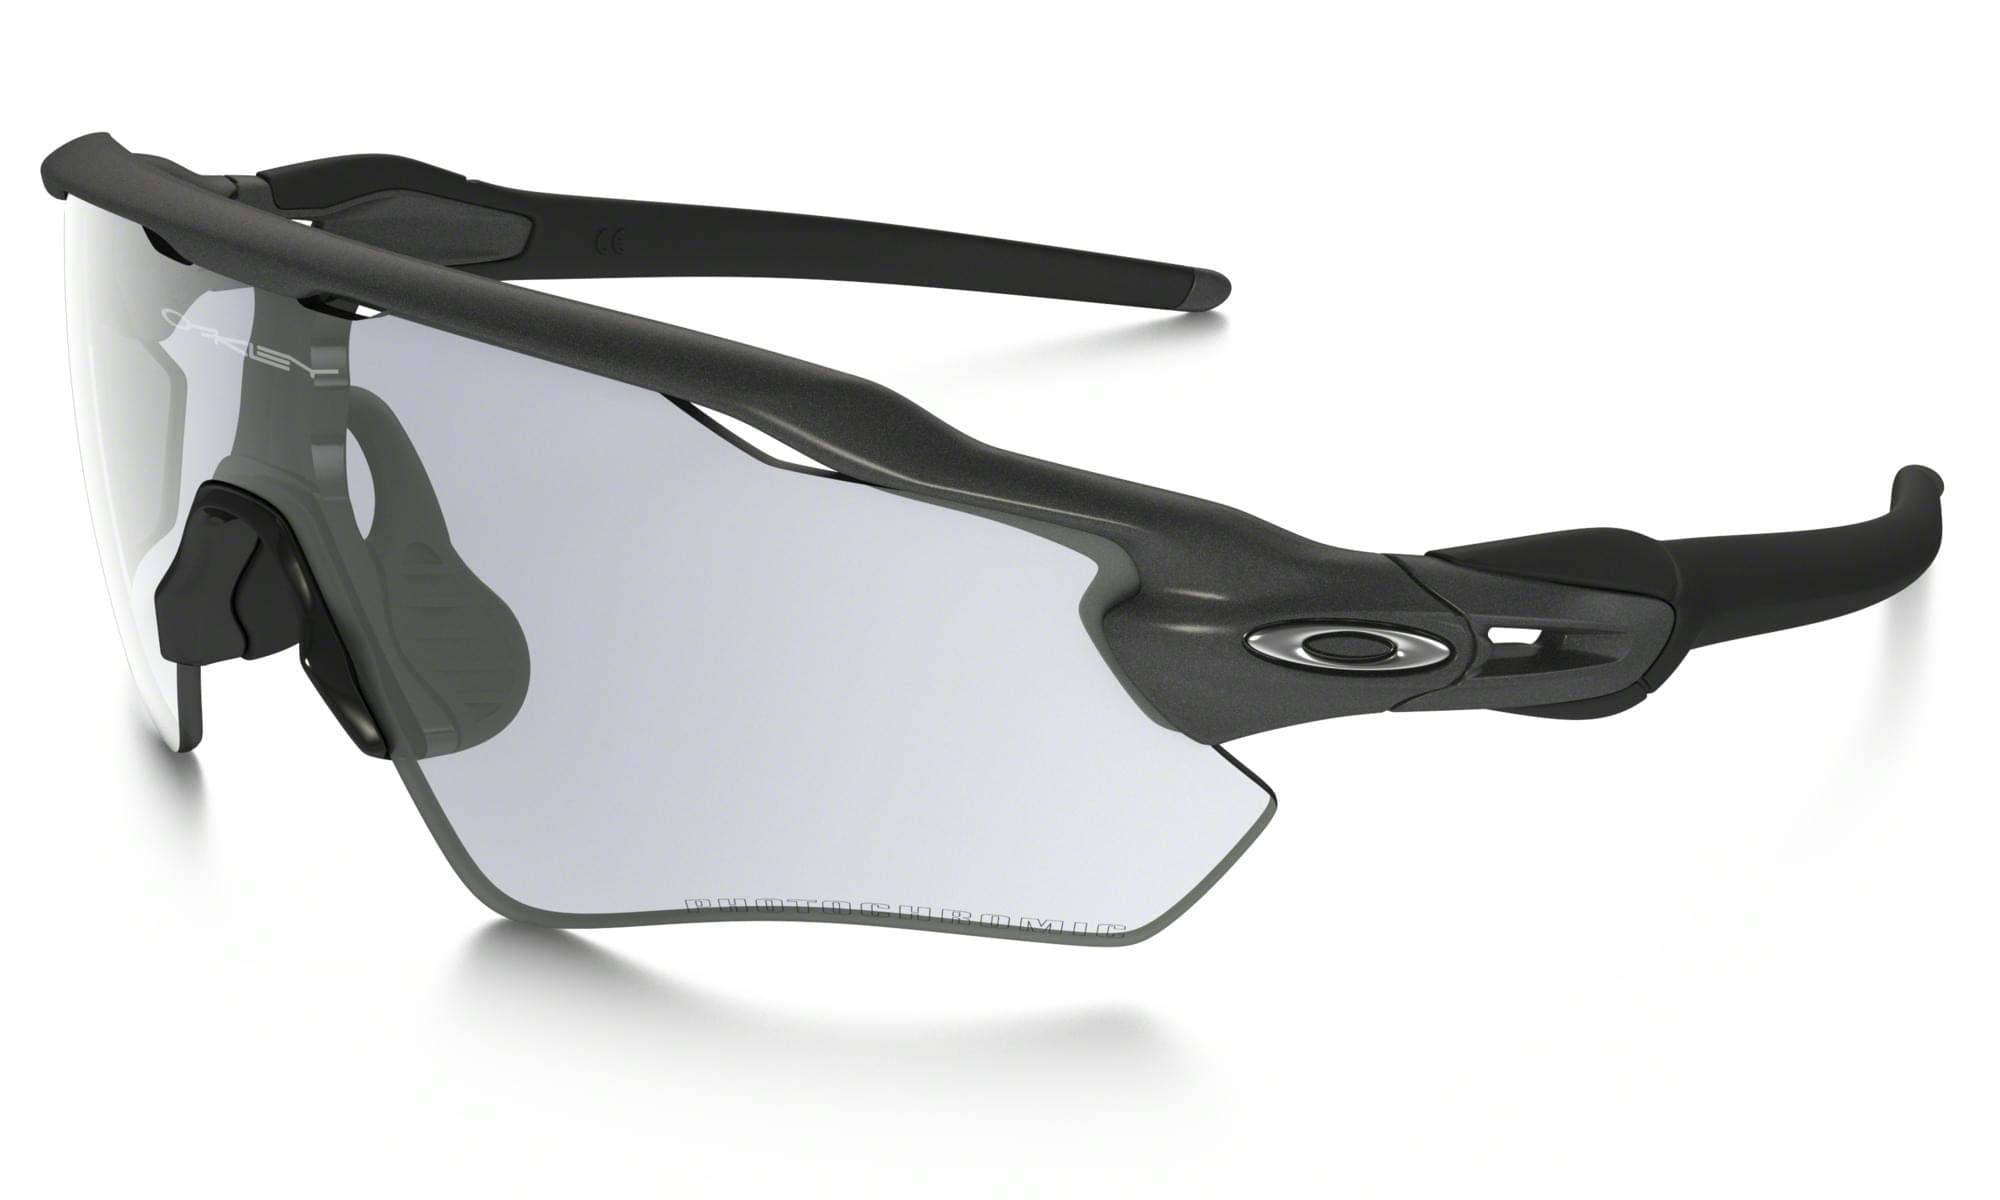 Sportovní brýle Oakley Radar EV - Steel/Clear Black Iridium Photochromic Activated uni